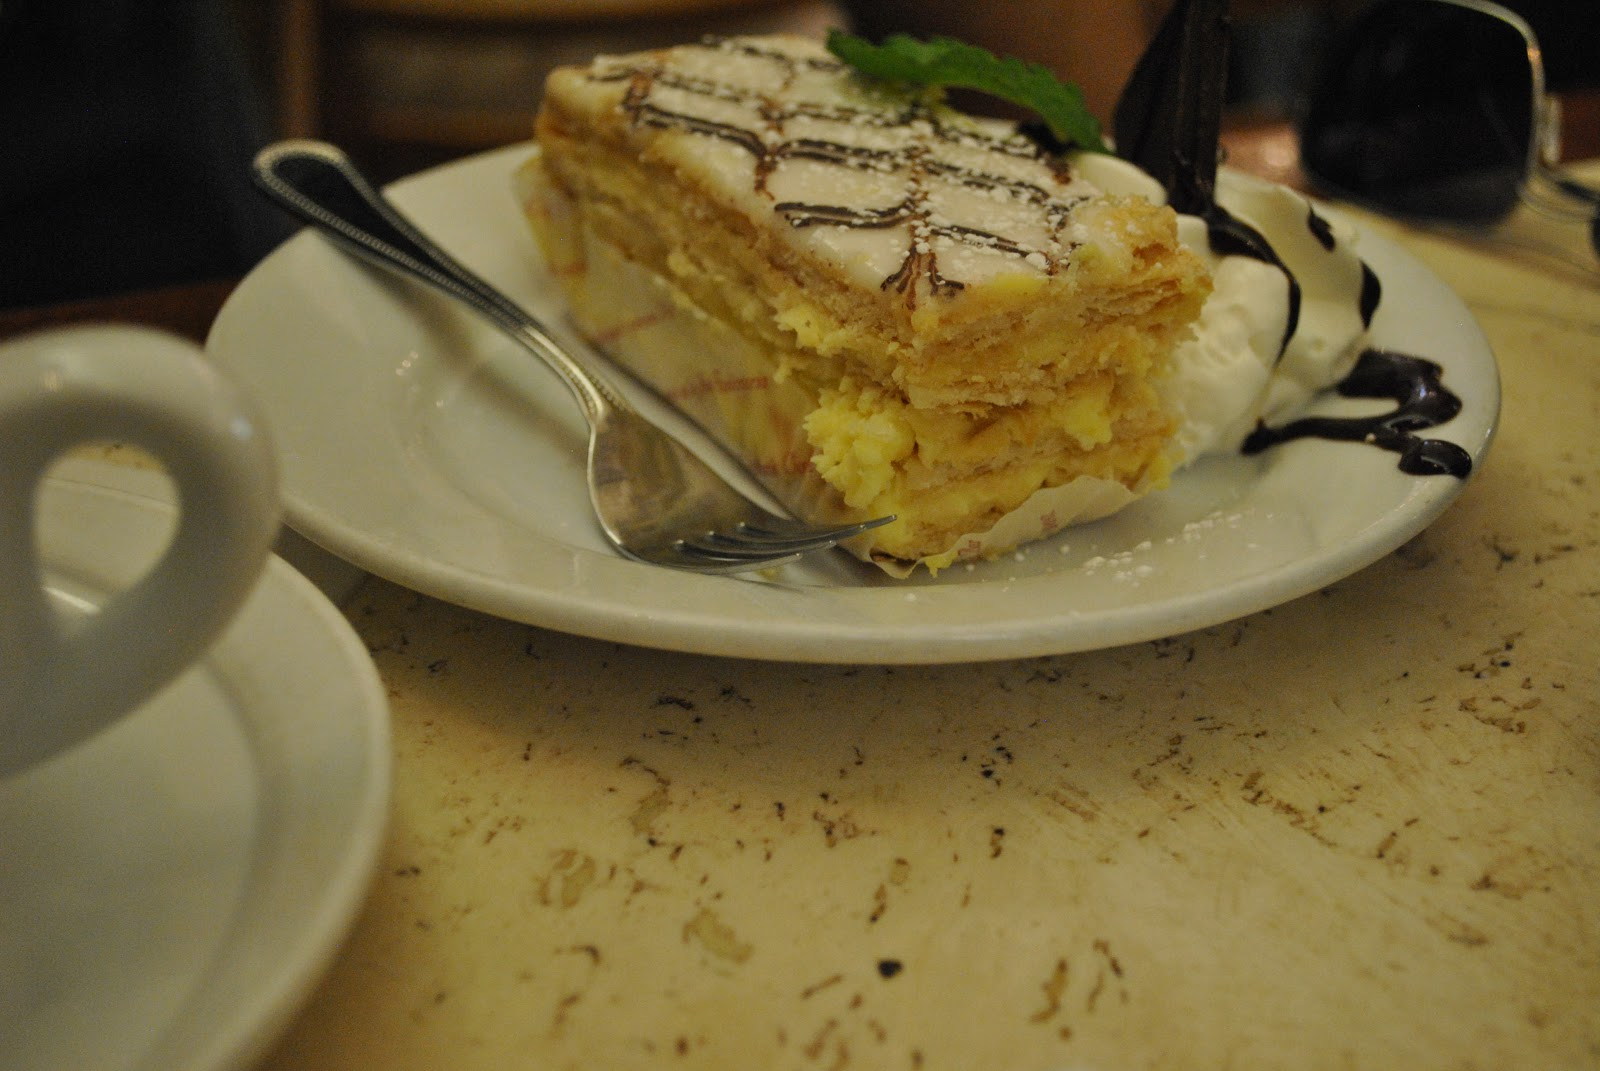 Pastries | The Hungry Nomad